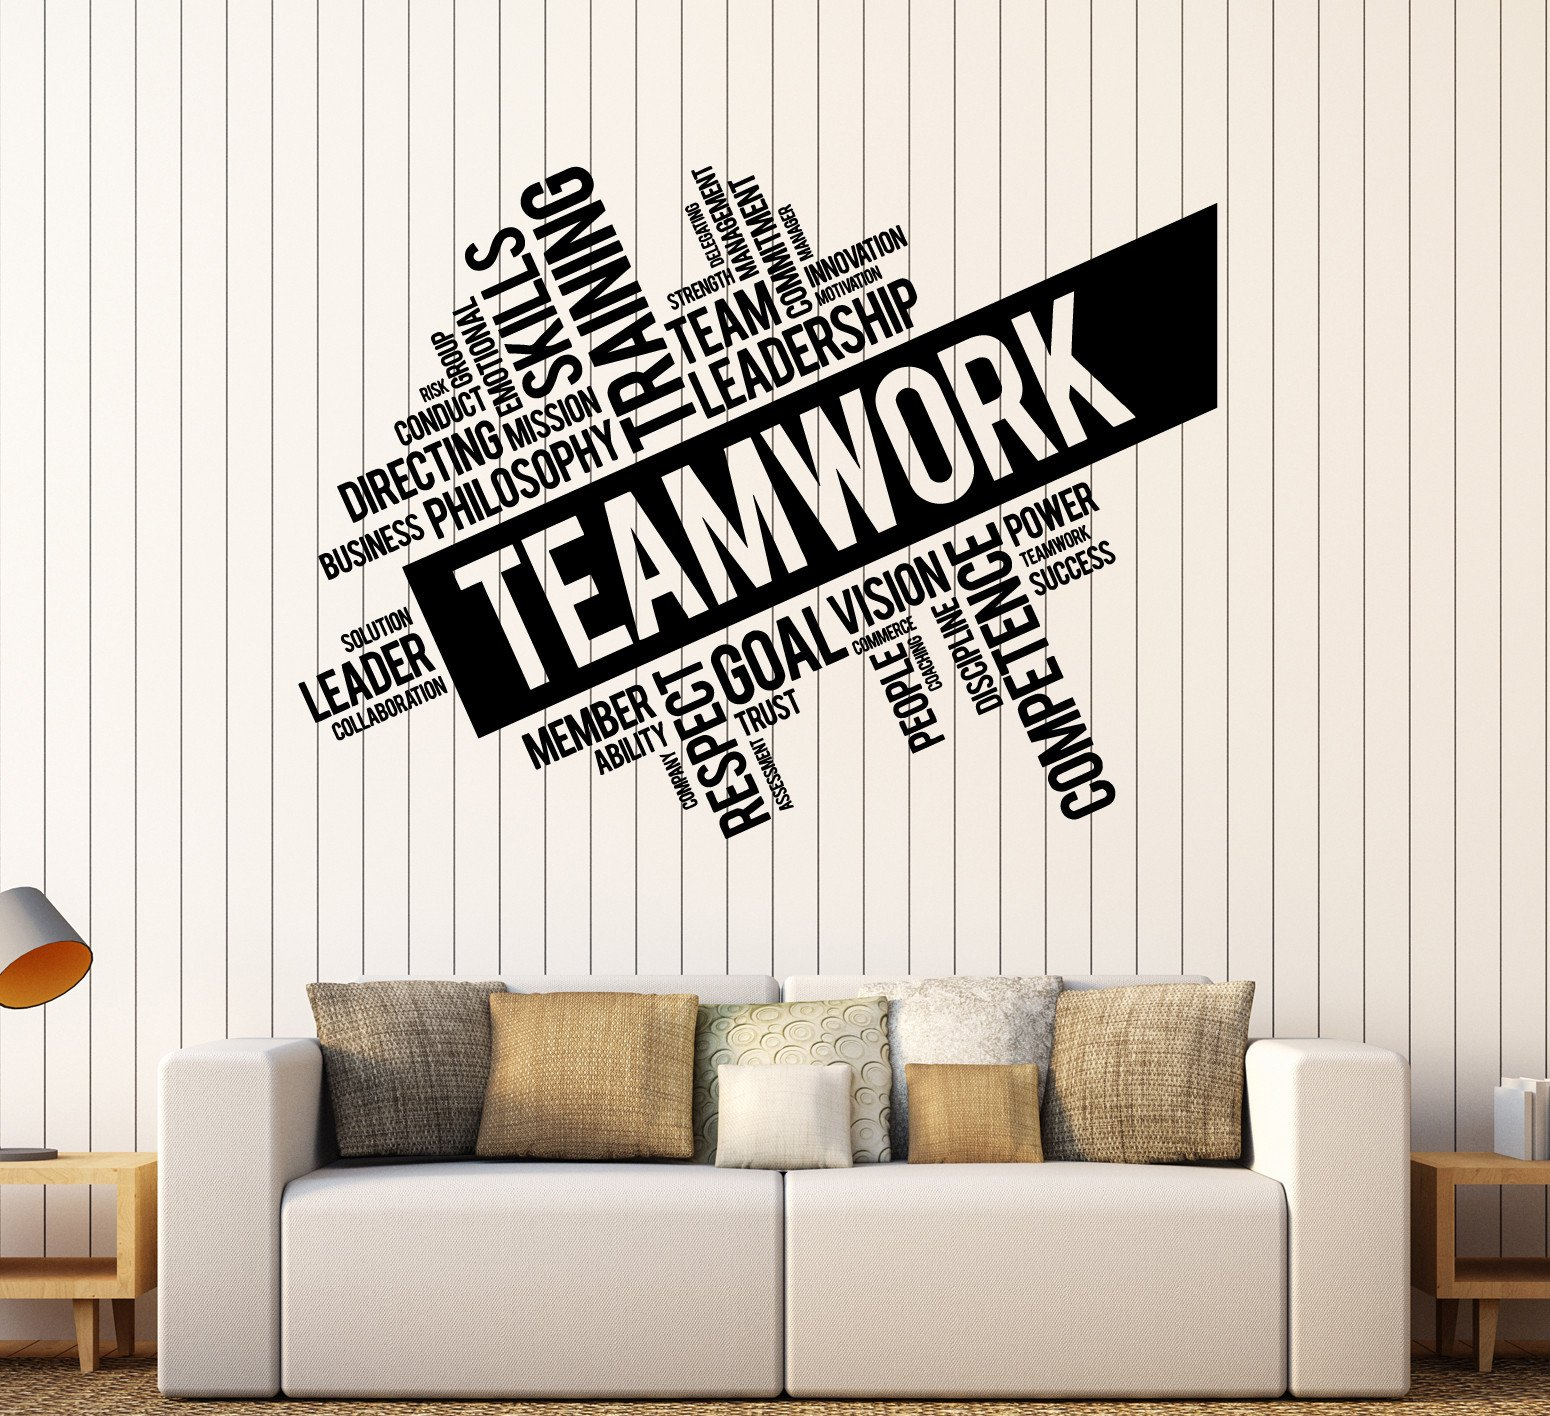 Vinyl Wall Decal Teamwork Success Office Decor Worker Stickers (ig4152) Black by Wallstickers4you (Image #1)